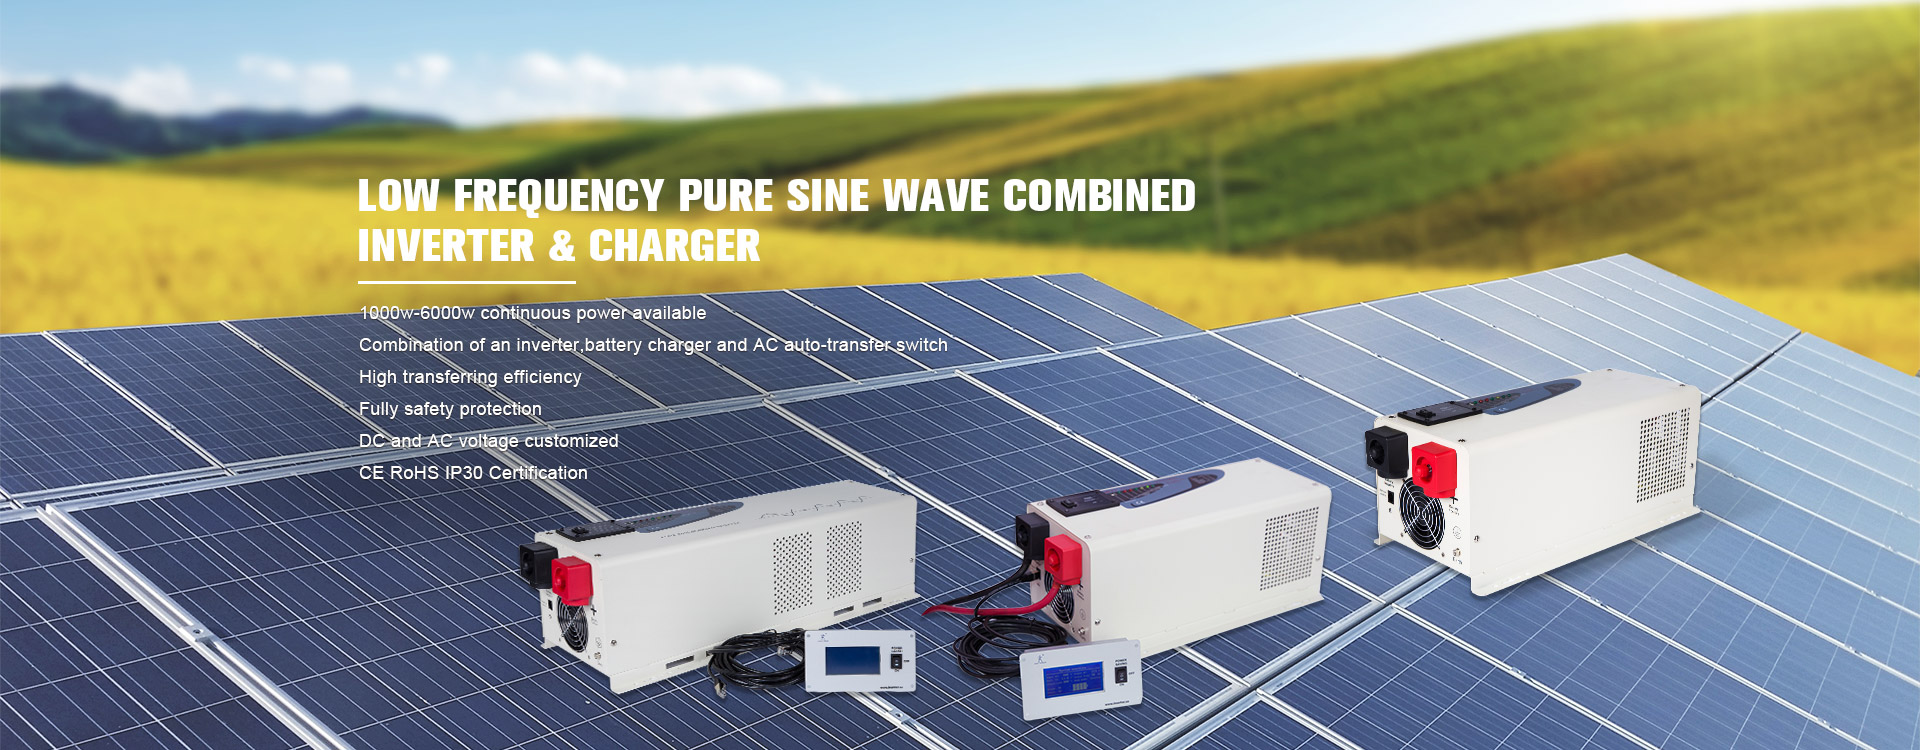 Low frequency pure sine wave conbined inverter with charger